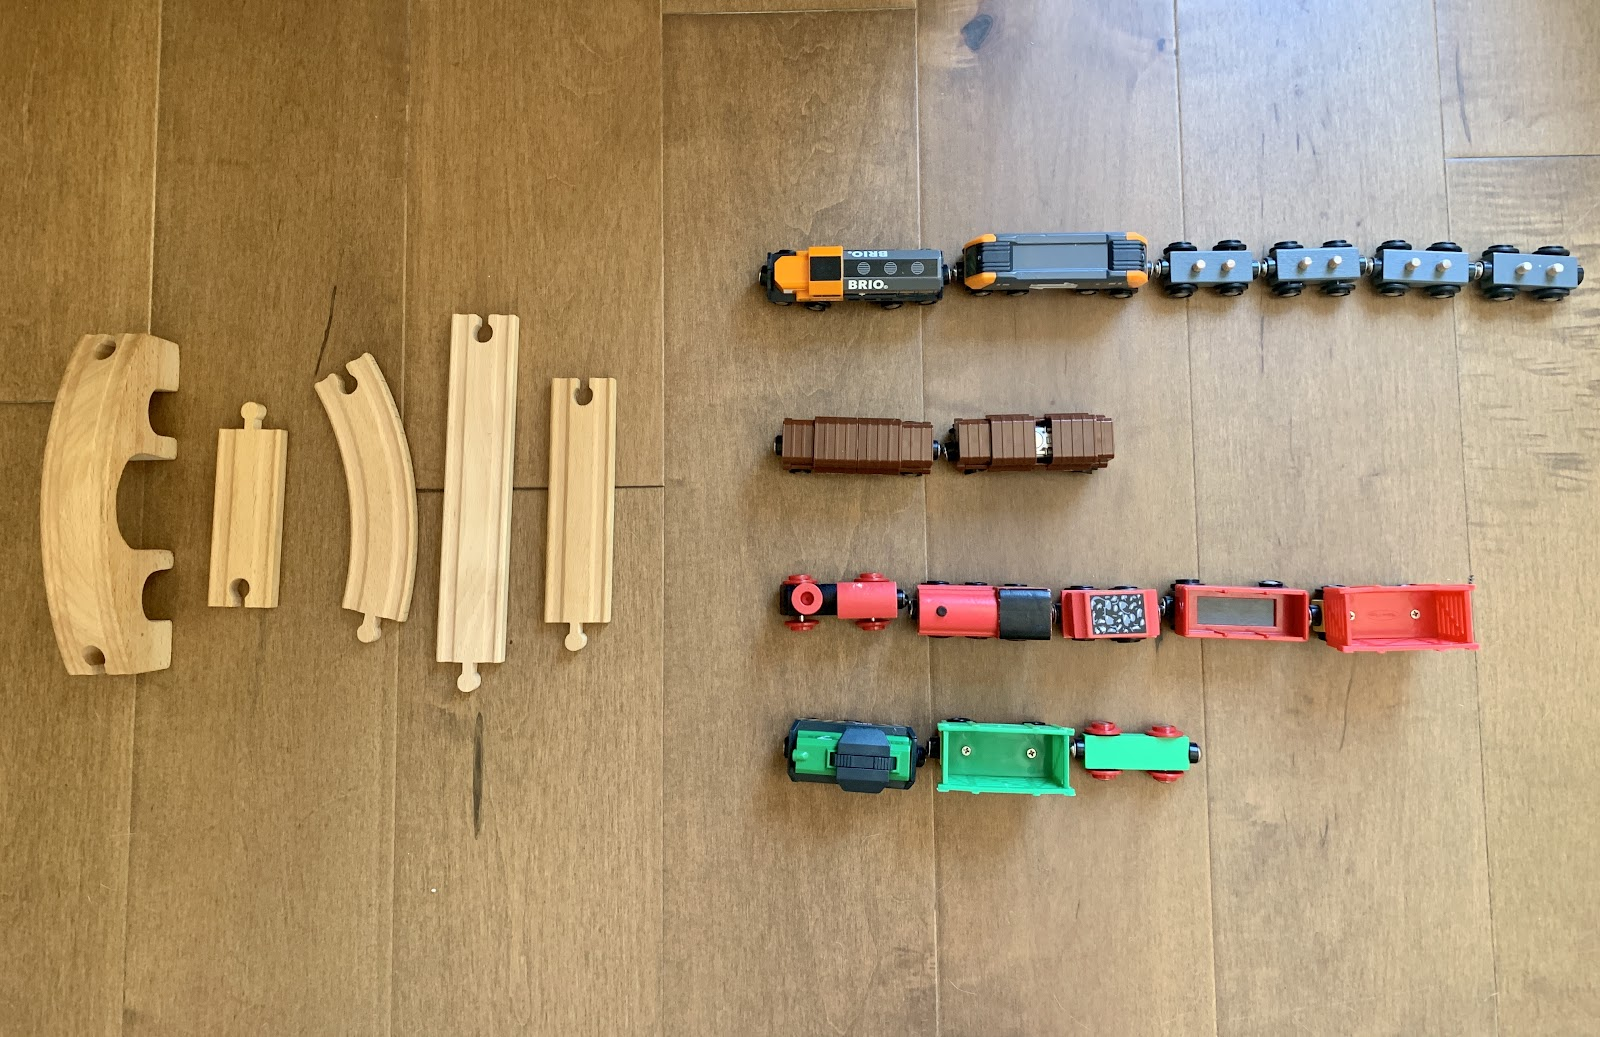 5 train track pieces. 3 are straight and 2 have curves. 4 rows of train cars. One row has 6 gray train cars. Then a row of 2 brown train cars. Next a row of 5 red train cars. And a row of 3 green train cars.